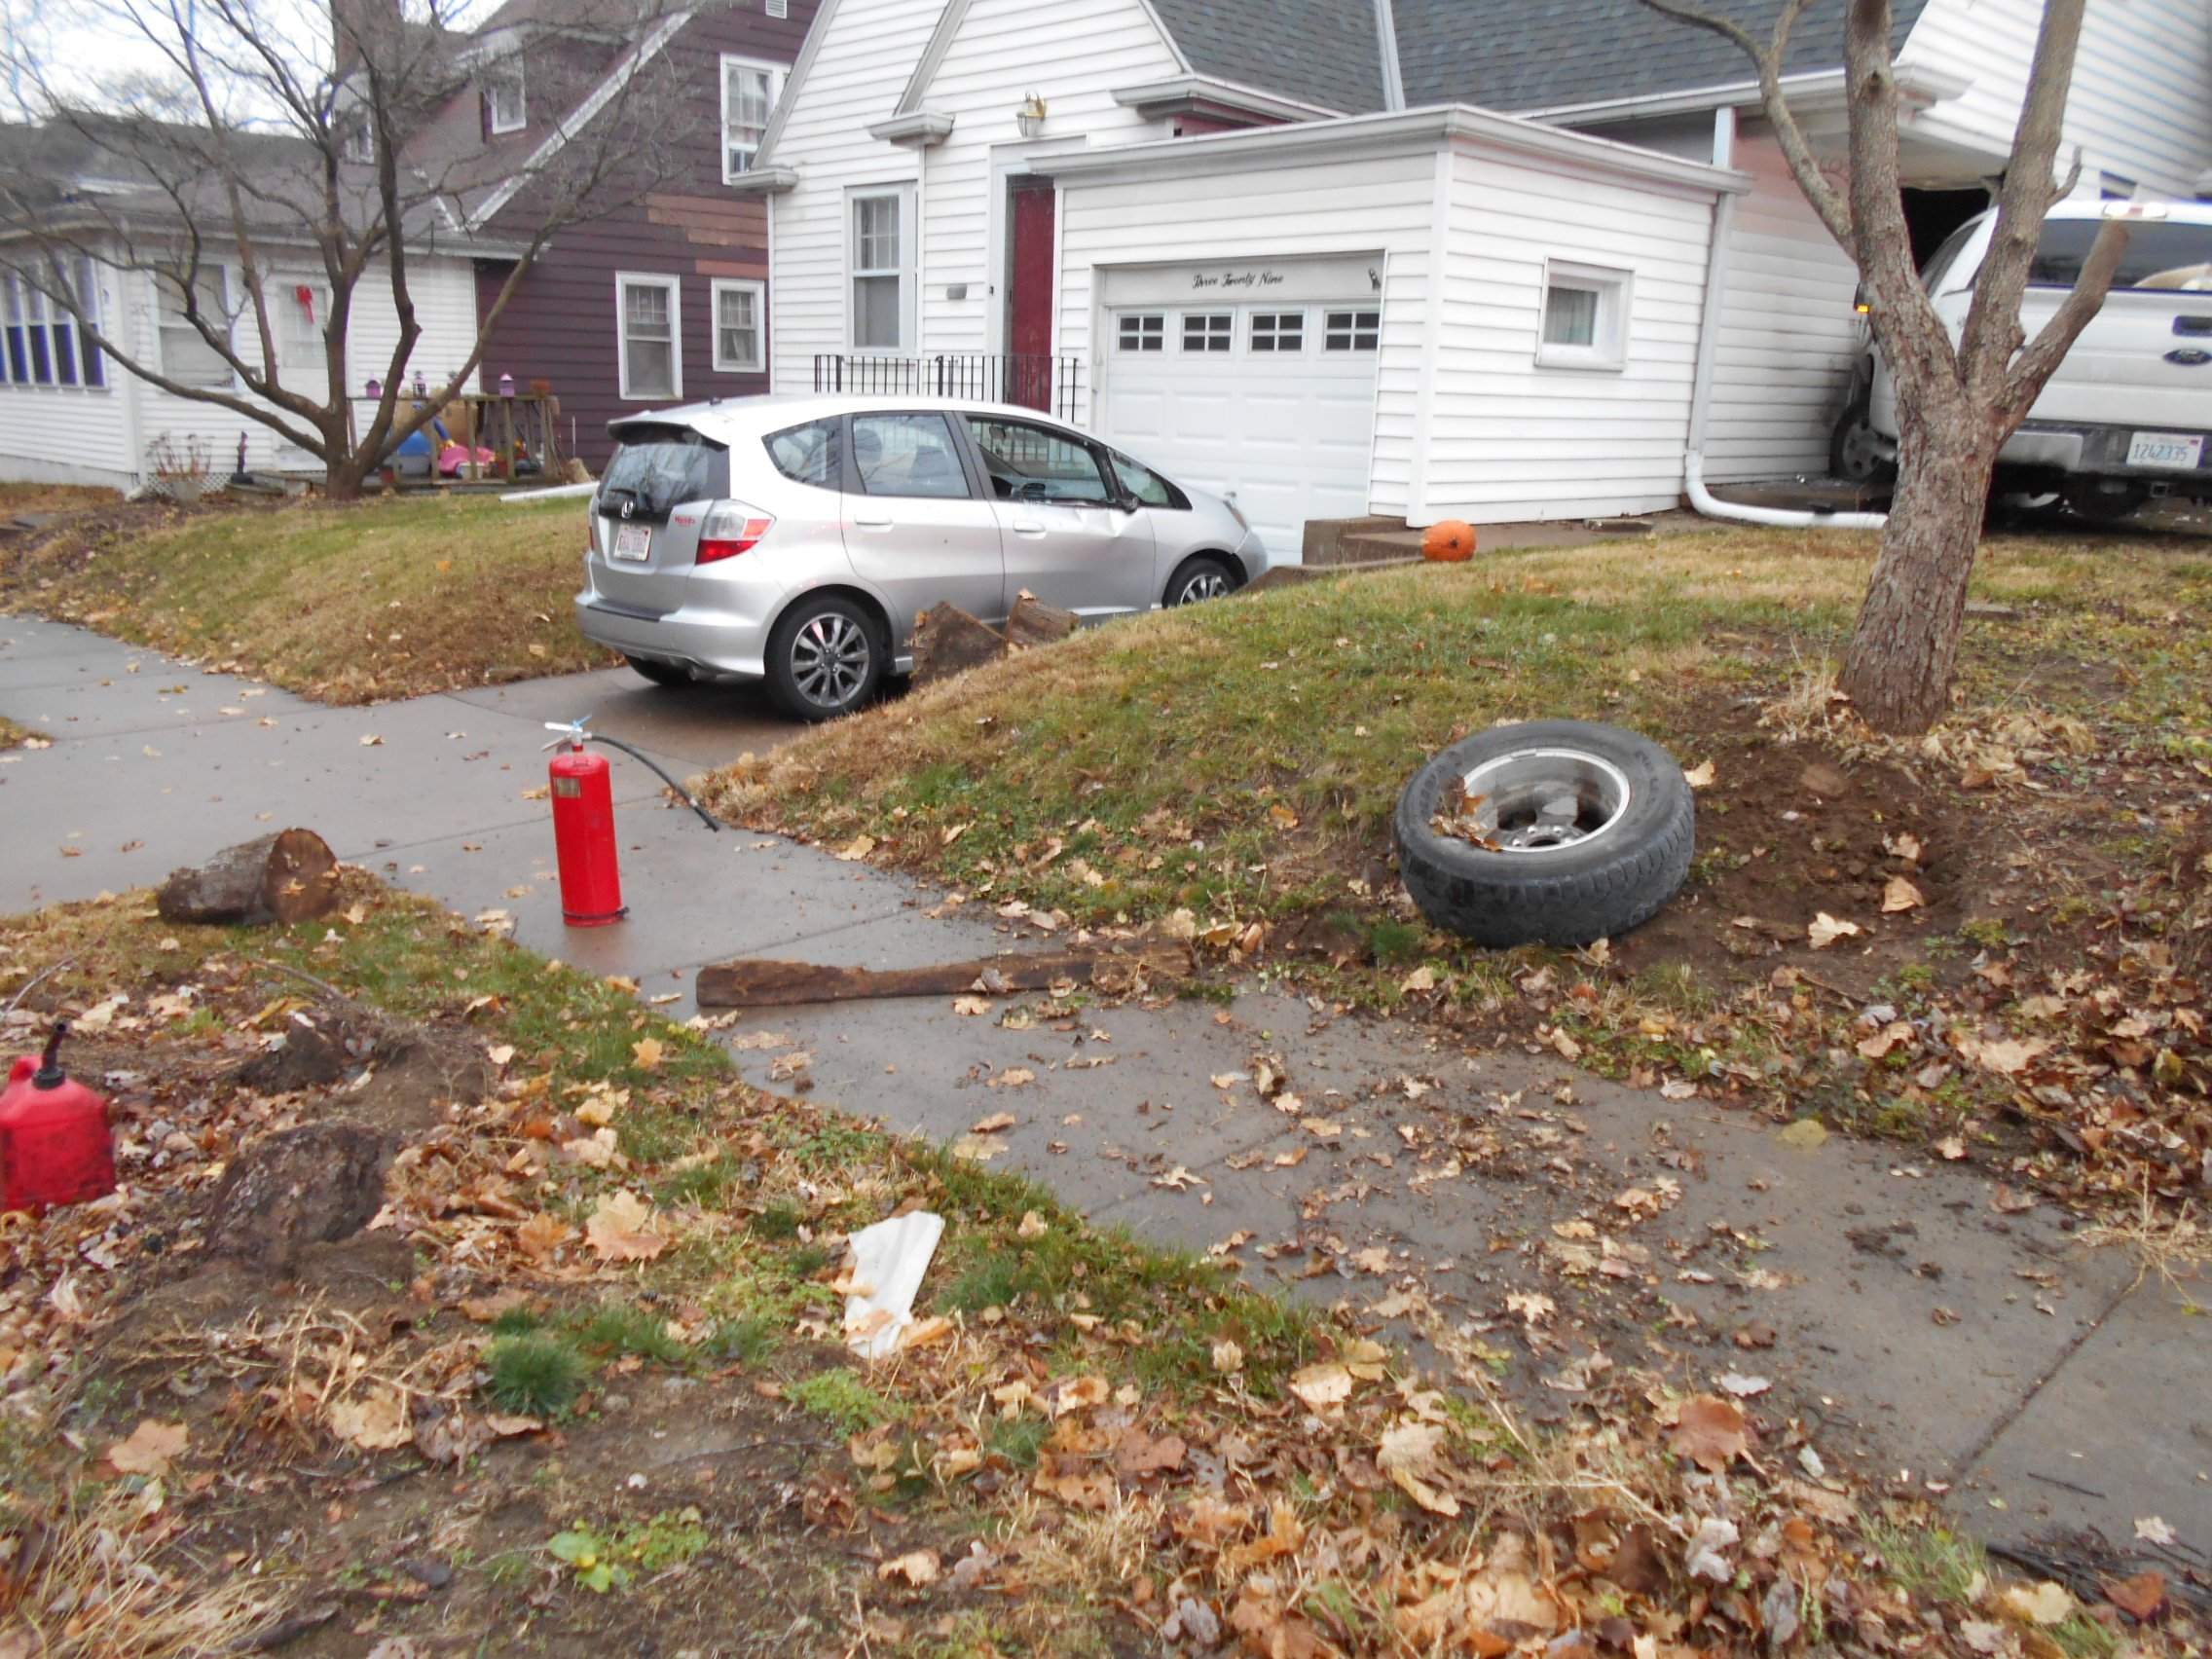 Police photo from the scene of a drugged driving case in Quincy.